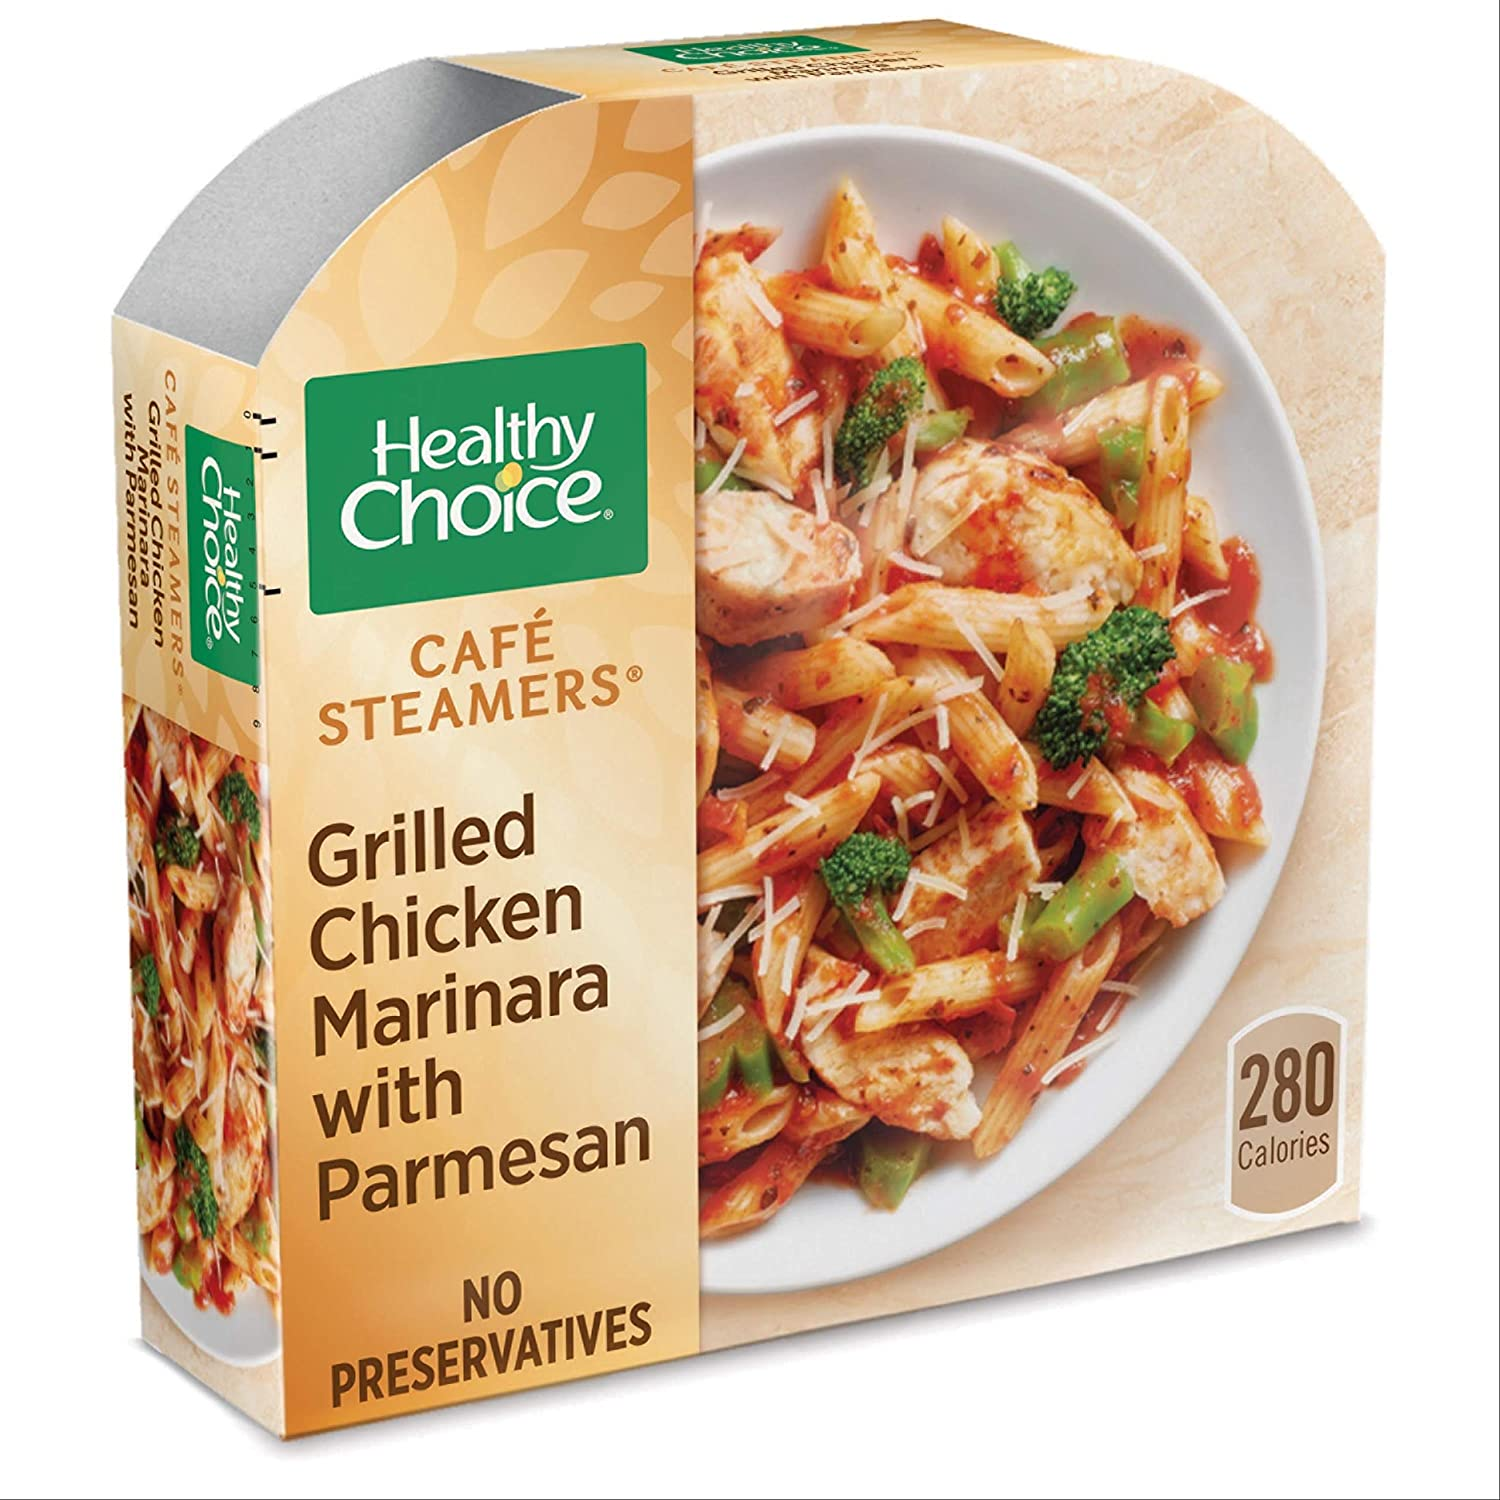 Healthy Choice Cafe Steamers Grilled Chicken Marinara with Parmesan, Frozen Meal, 9.5 OZ